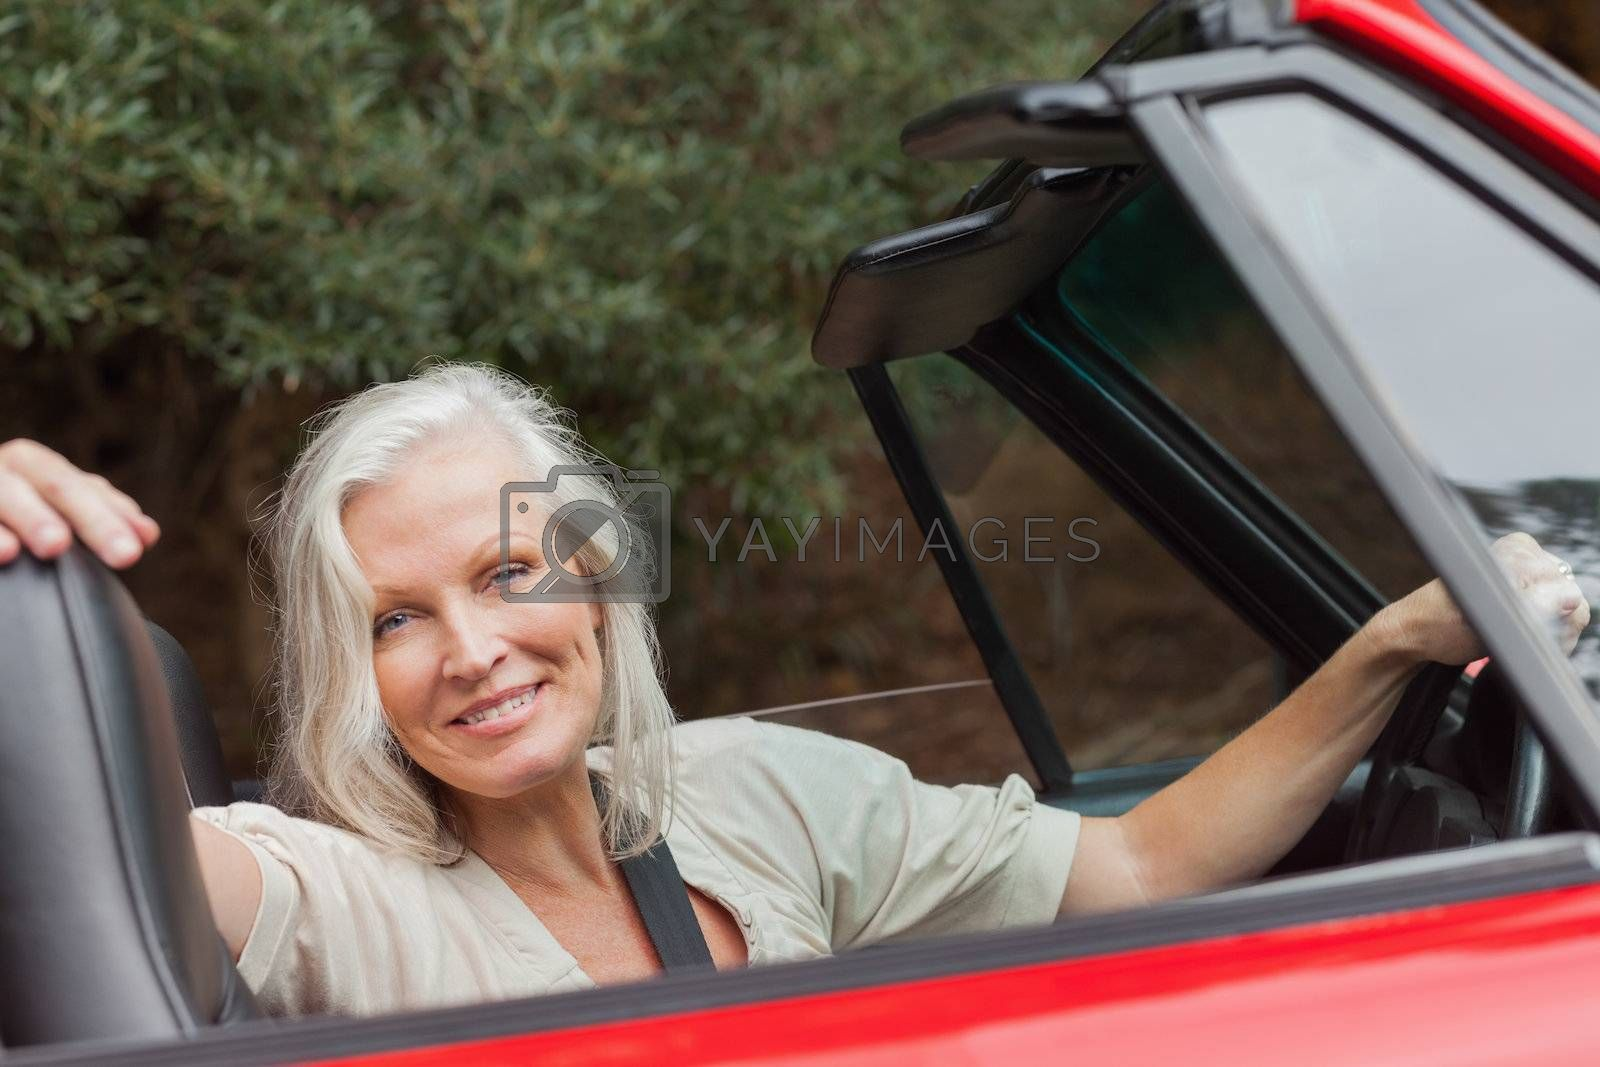 Smiling mature woman posing in red convertible by Wavebreakmedia